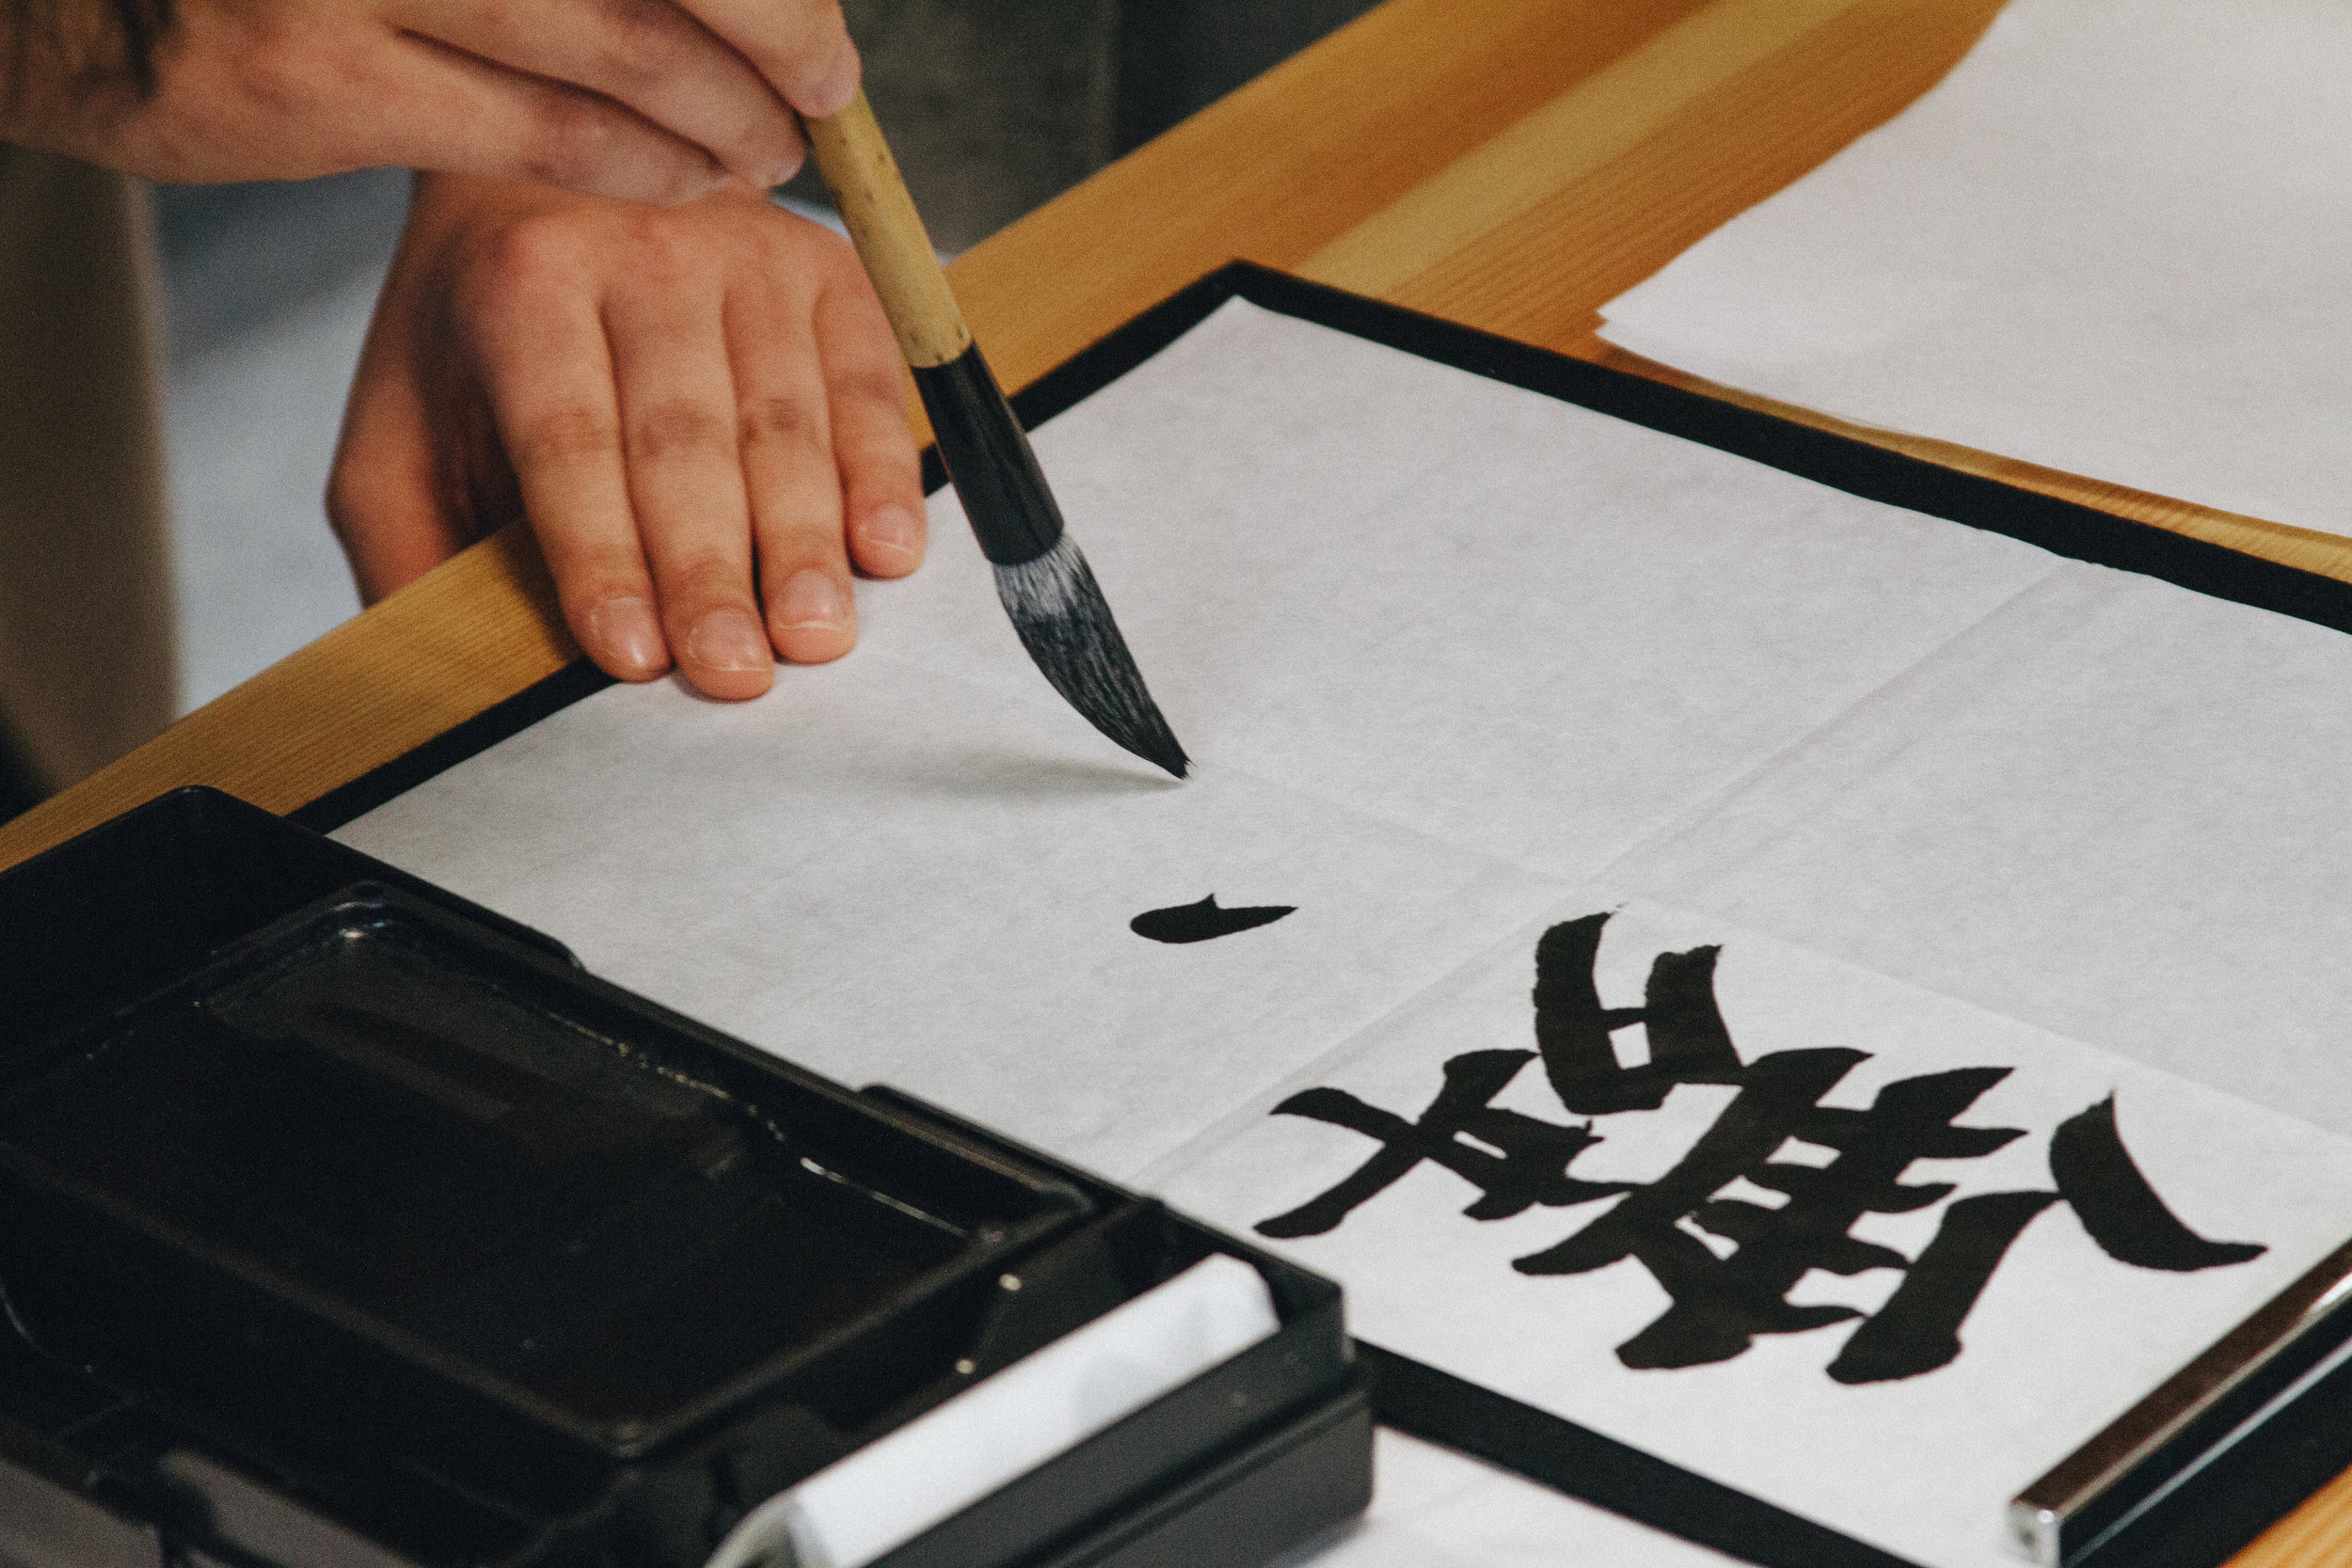 Kanji by Niketh Vellanki from unsplash.com. Kanji is a form of Japanese writing with Chinese characters.